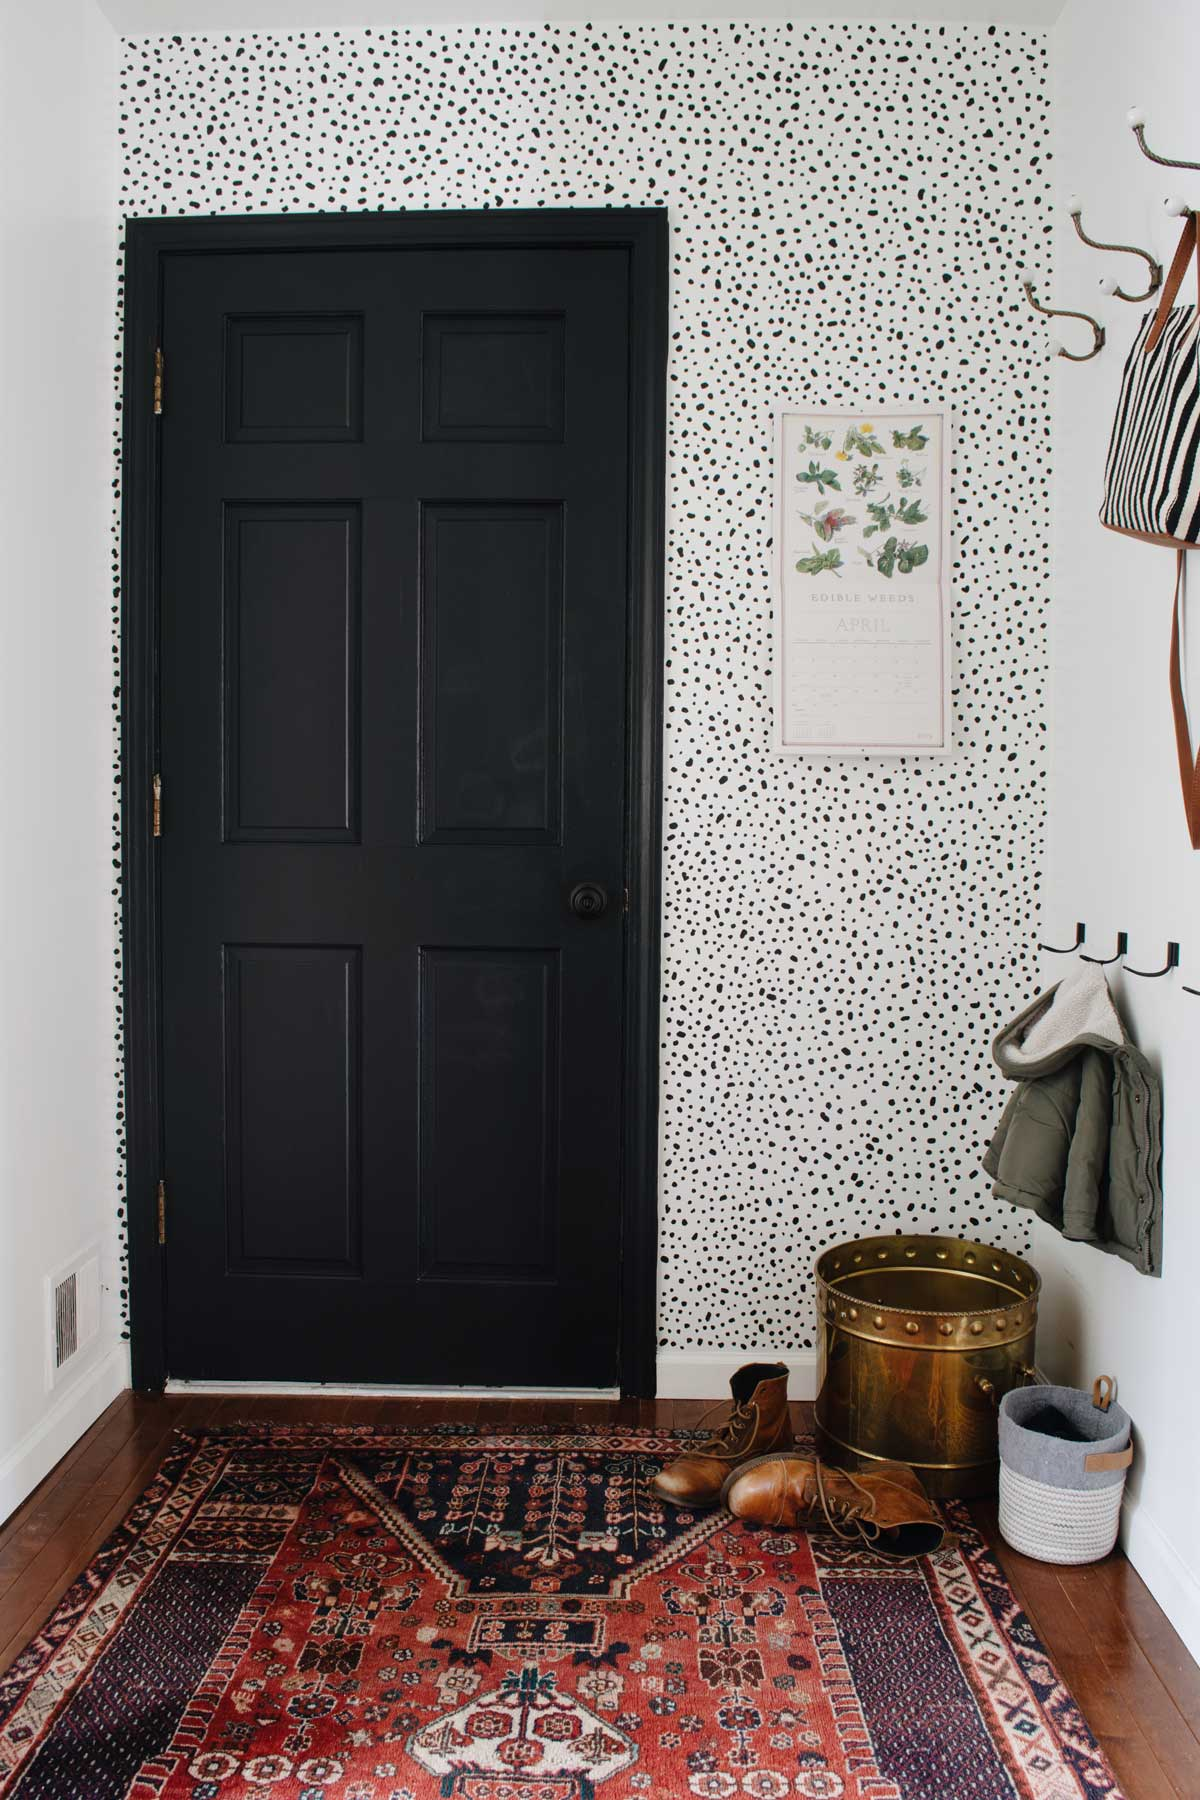 FAUX SPECKLED WALLPAPER USING PAINT